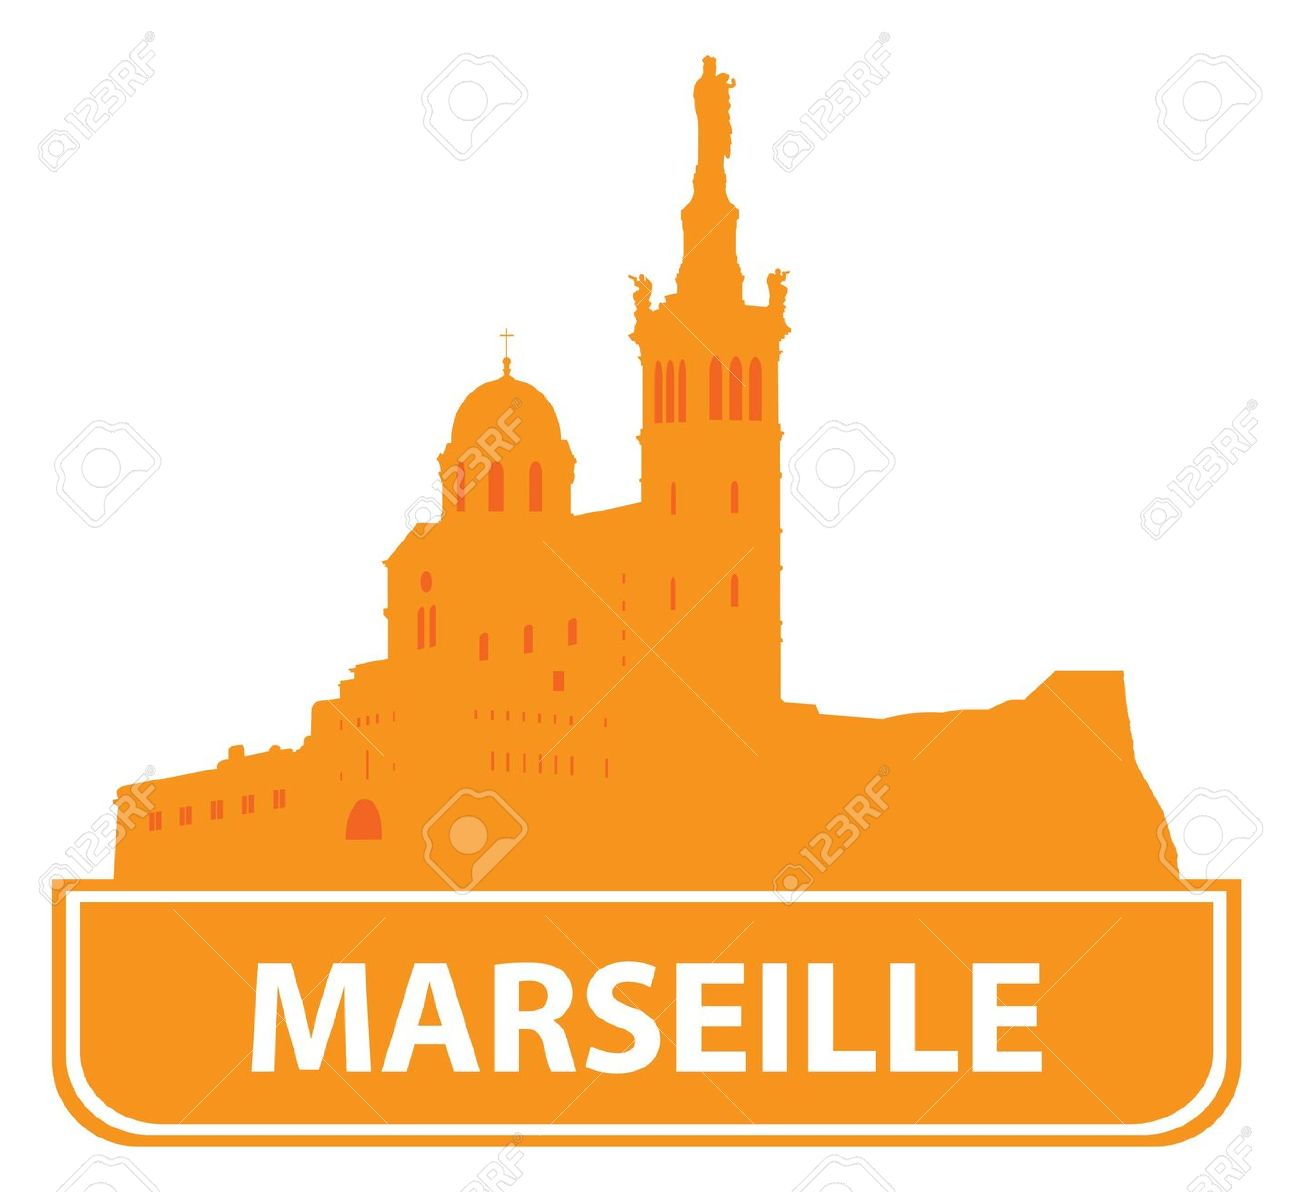 Marseille clipart #16, Download drawings